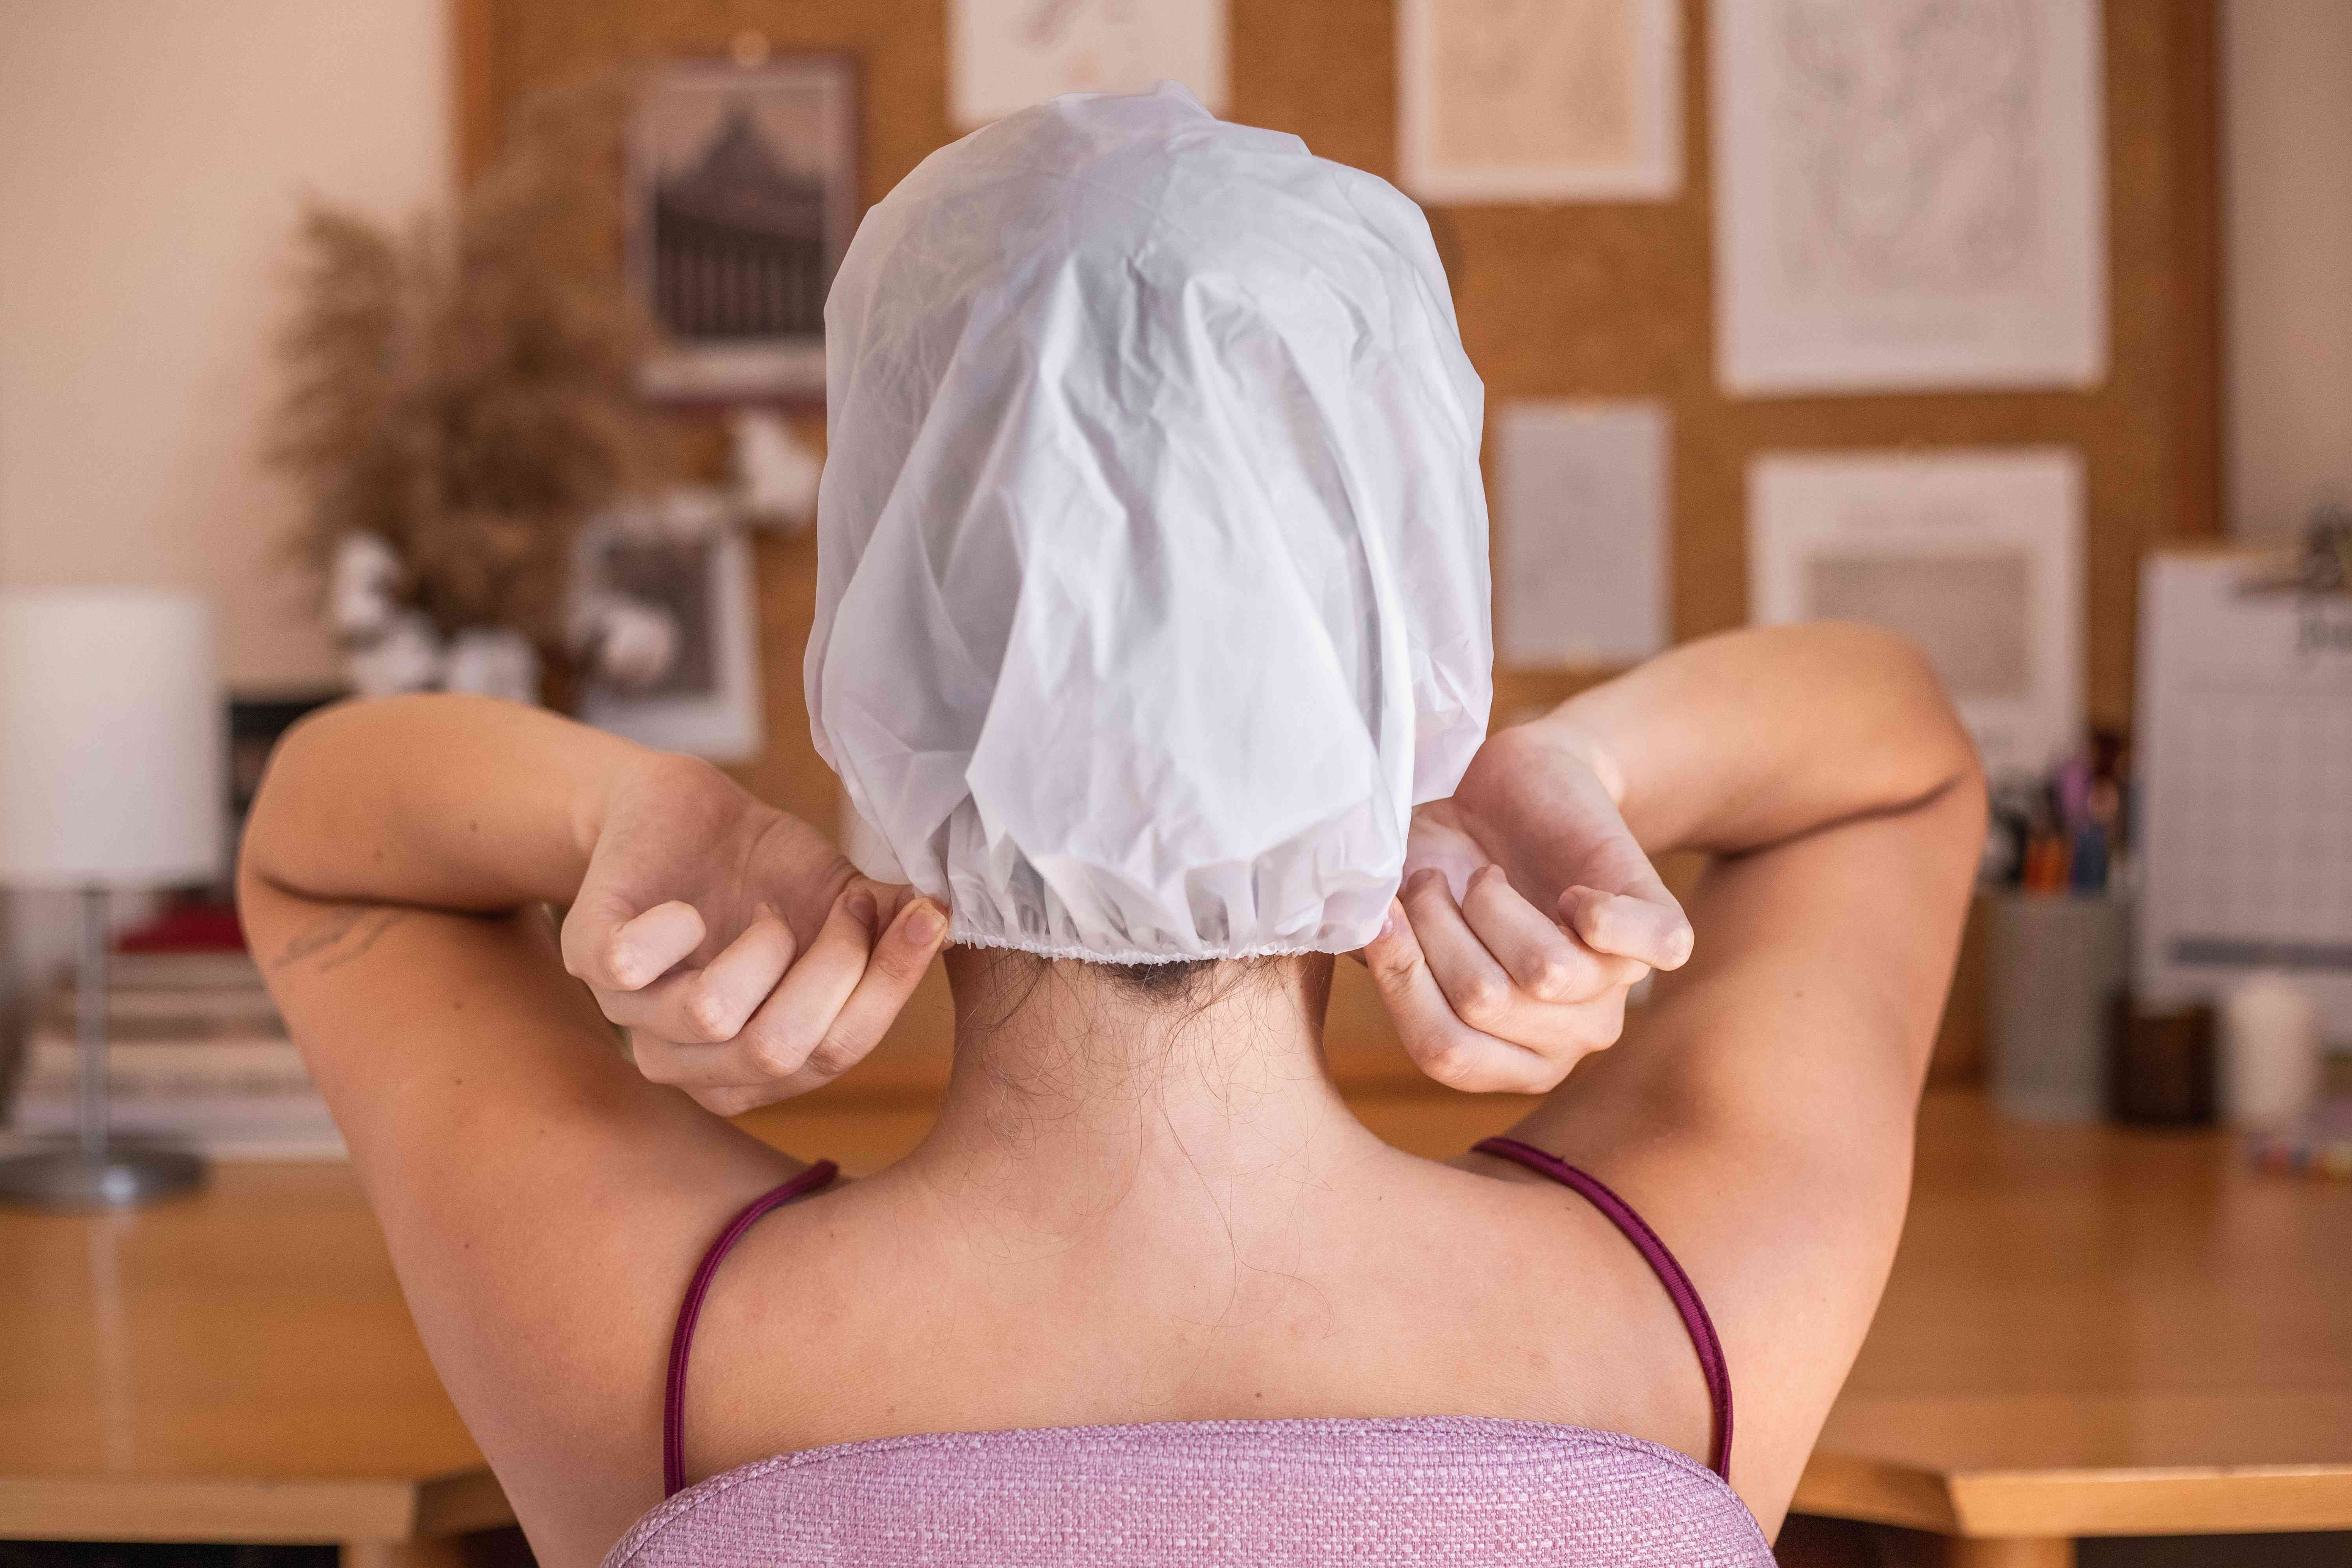 woman puts shower cap over hair to let olive oil mask soak in